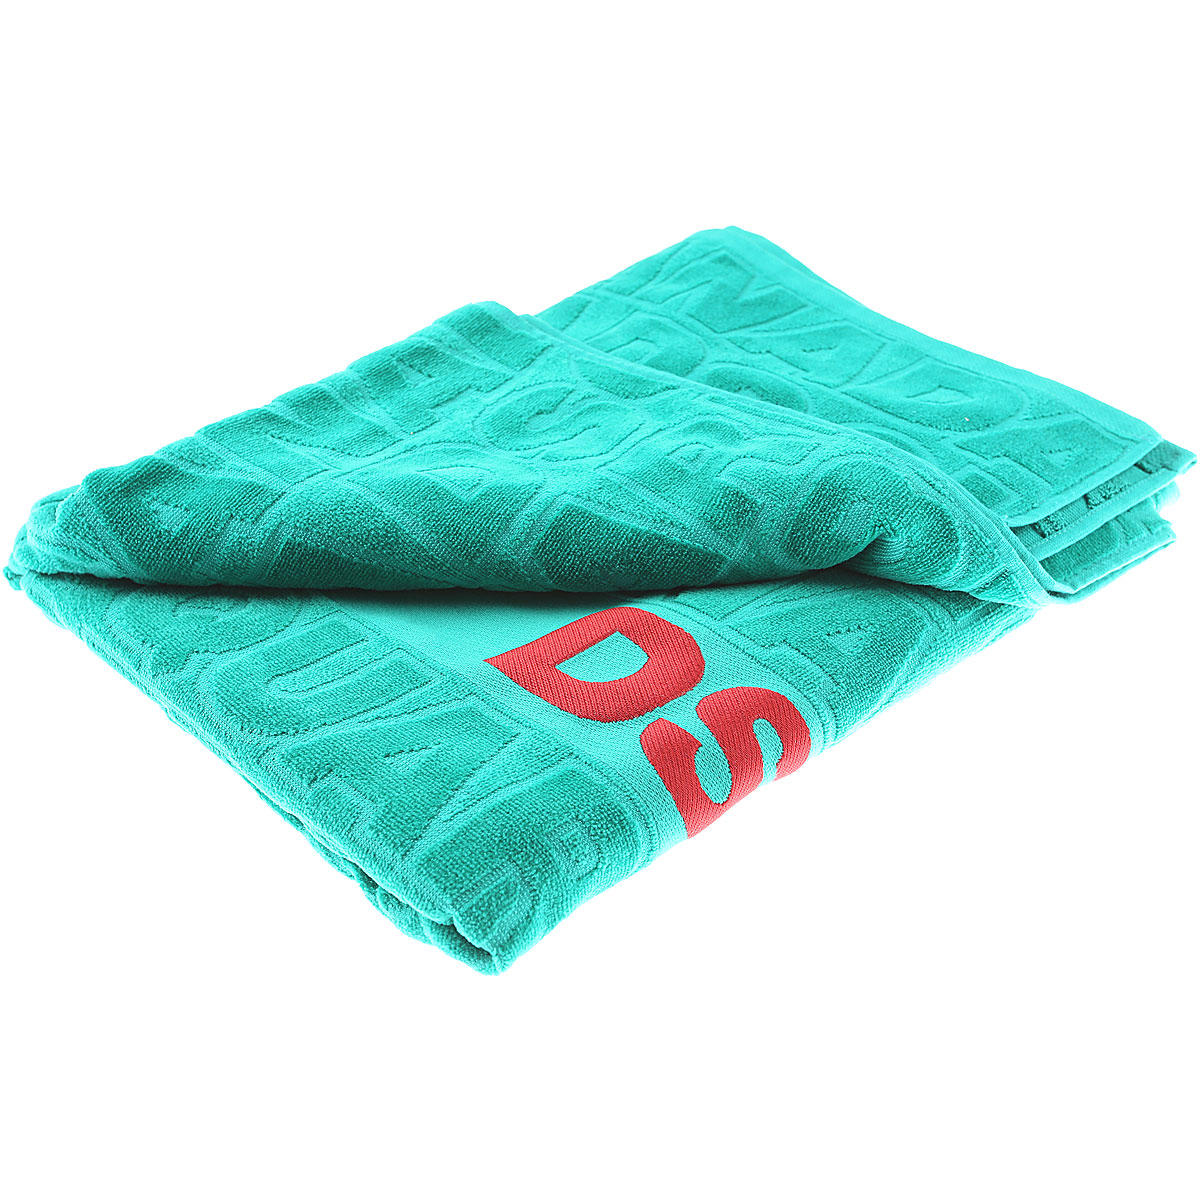 Dsquared2 Beach Towel On Sale, Emerald Green, Cotton, 2019